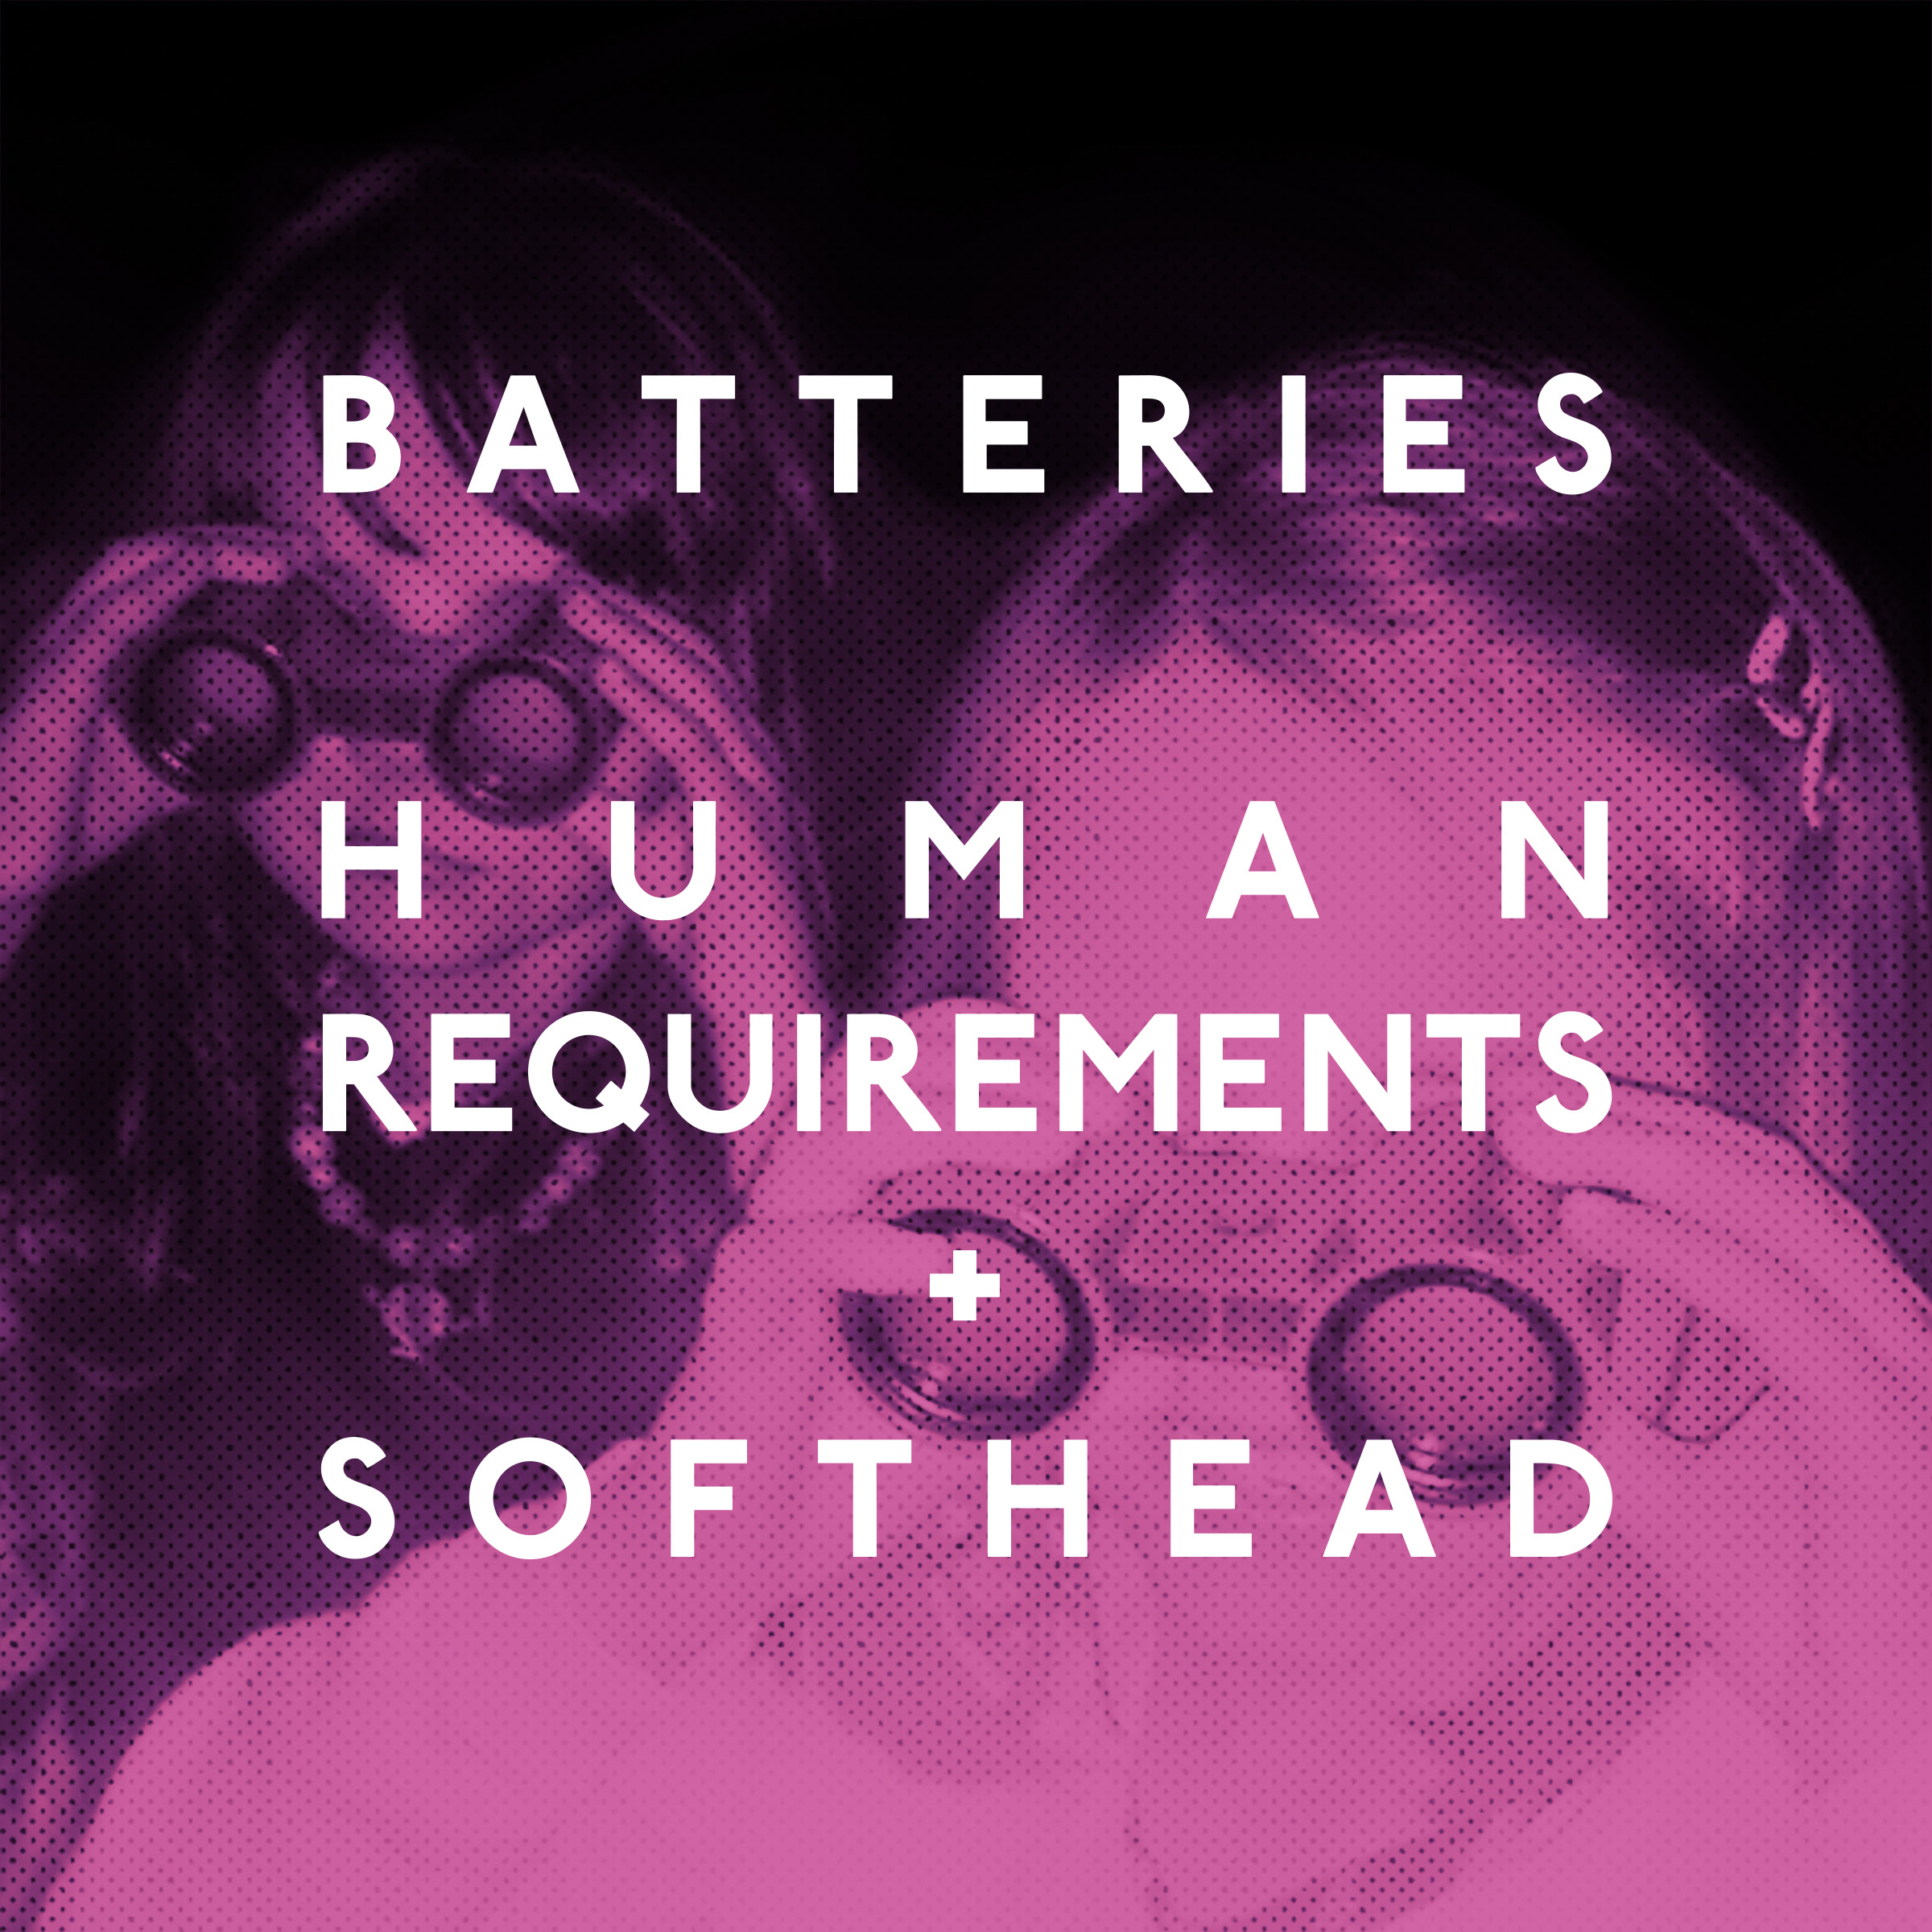 "Batteries Reveal new single ""HUMAN REQUIREMENTS"", Taken From Forthcoming album 'BATTERIE'S"